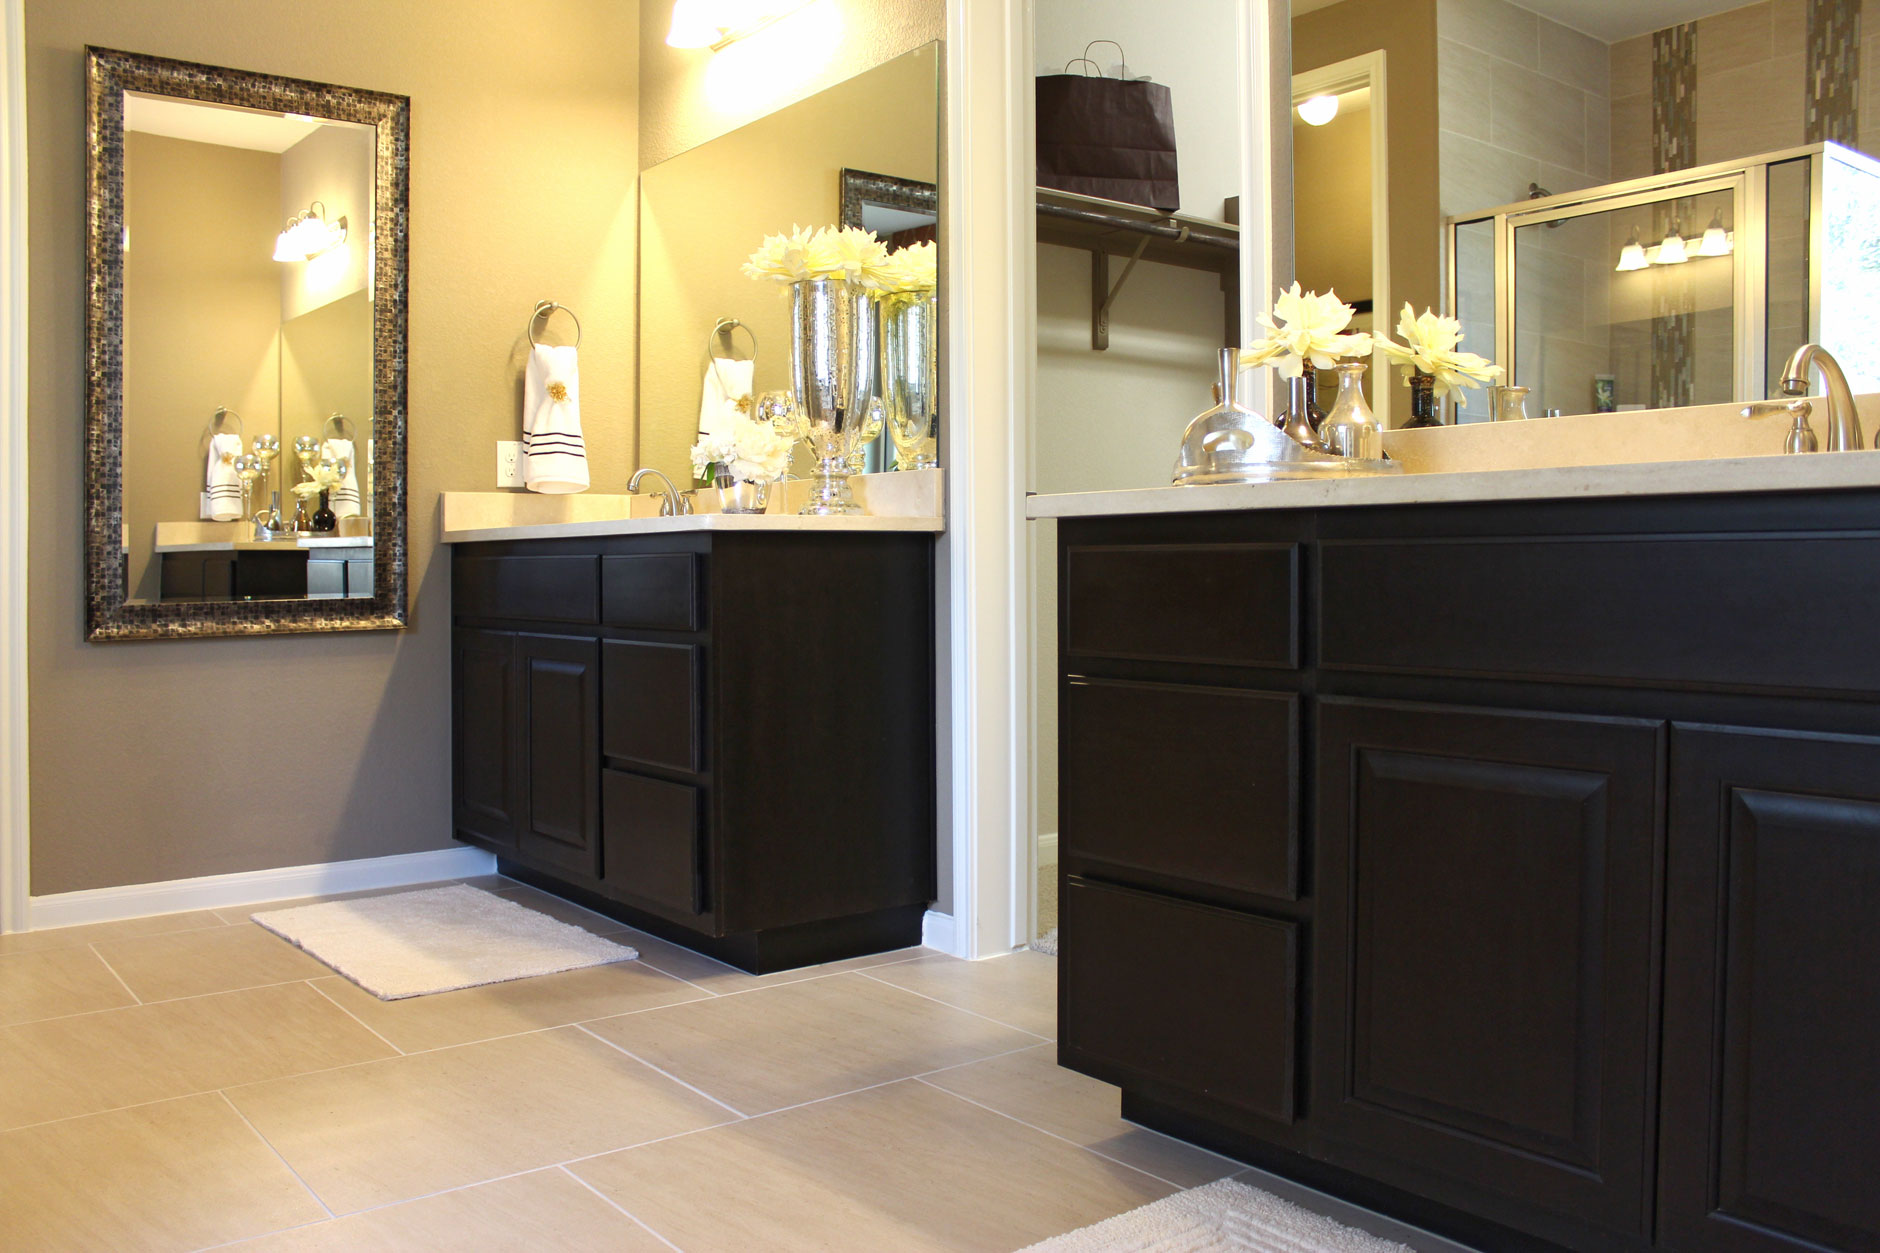 Bathroom burrows cabinets central texas builder direct for Espresso bathroom ideas